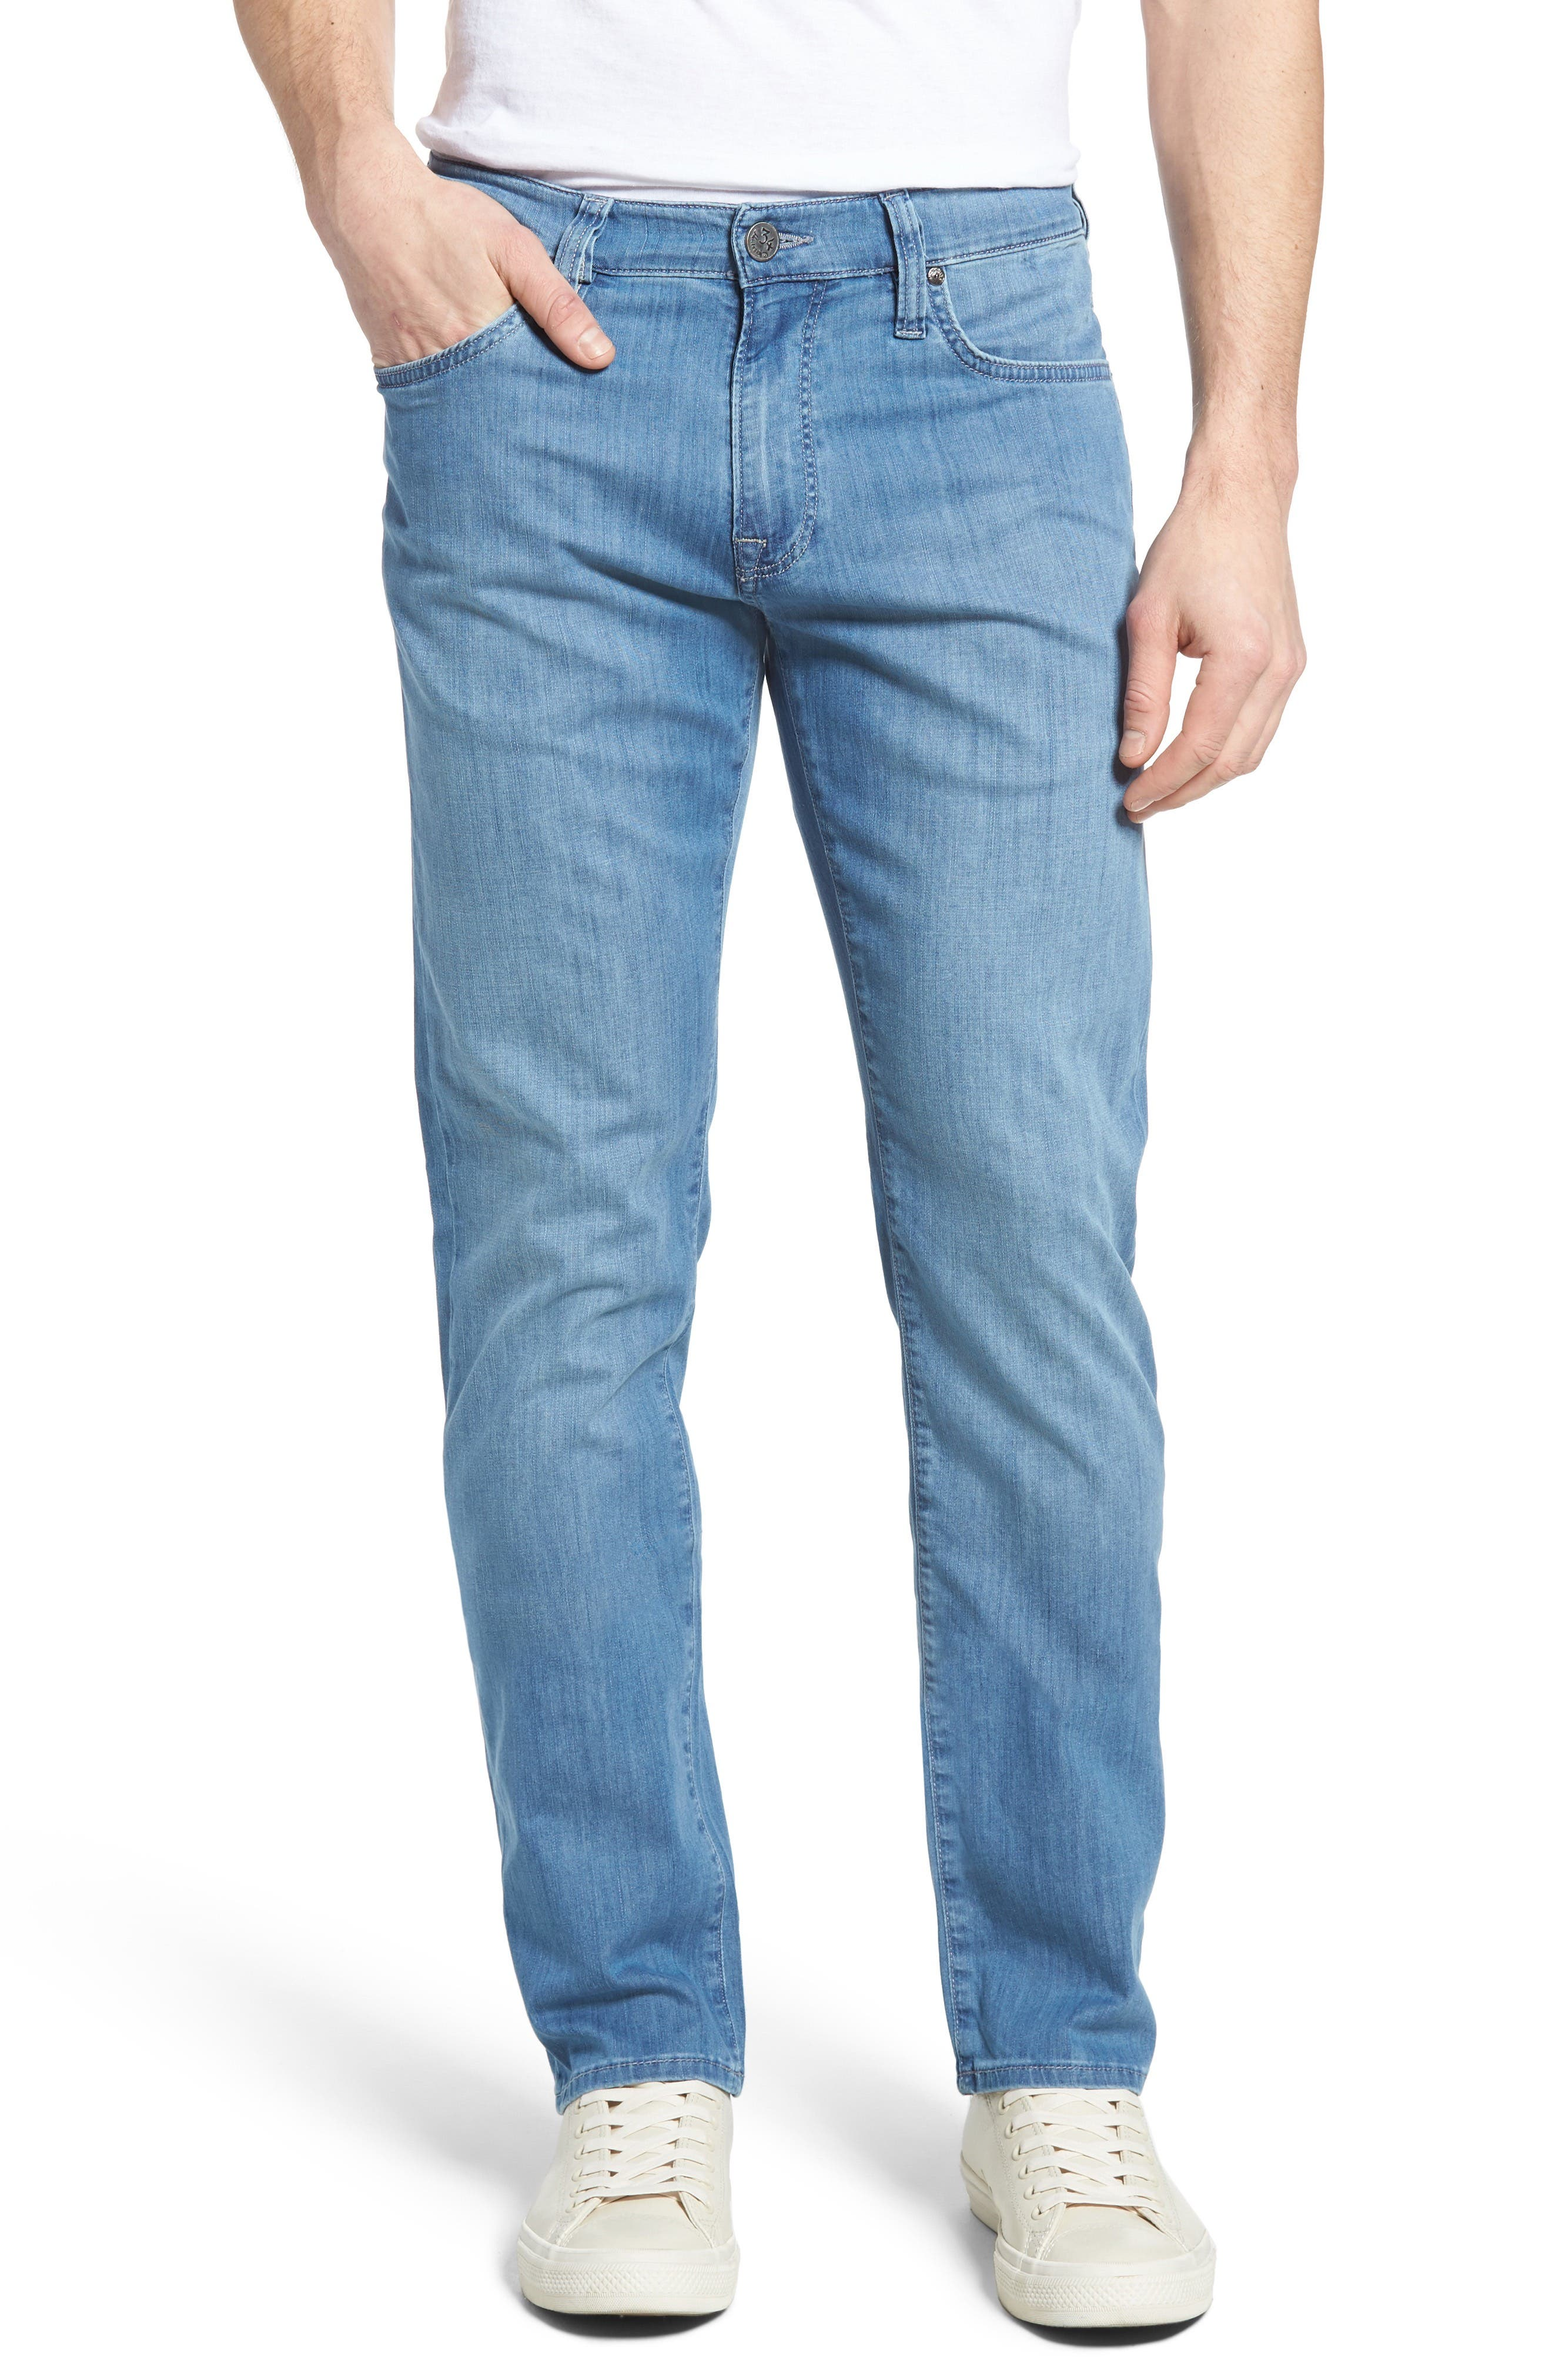 34 Heritage Courage Straight Leg Jeans (Sky Summer)